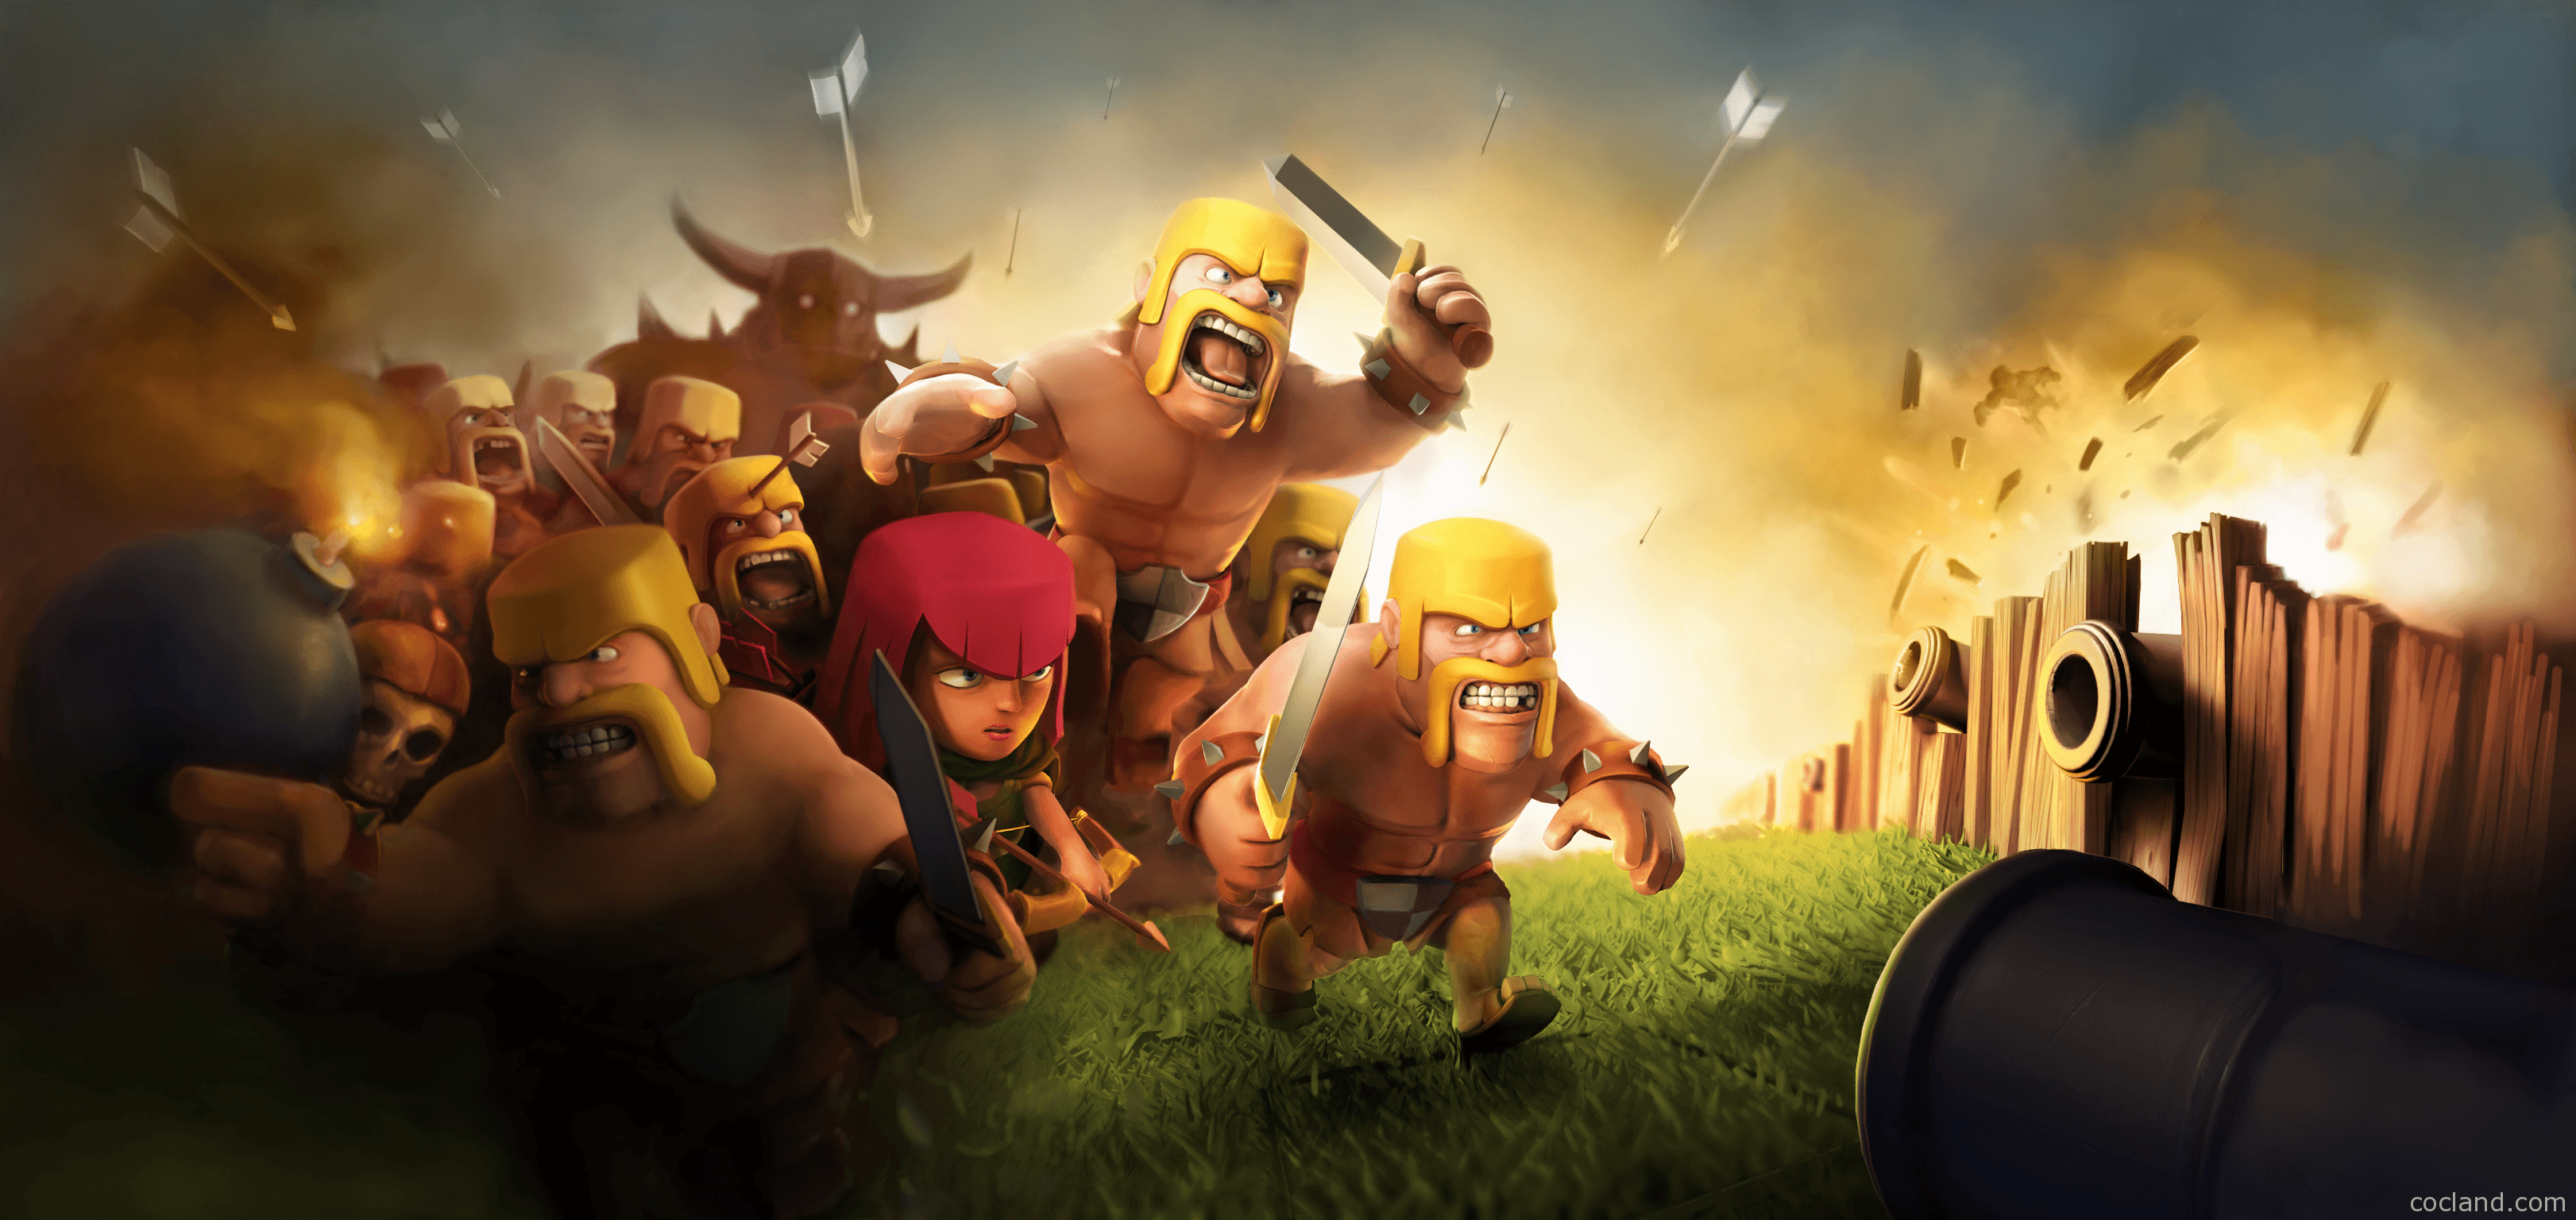 Clash Of Clans Wallpapers Wallpaper Cave